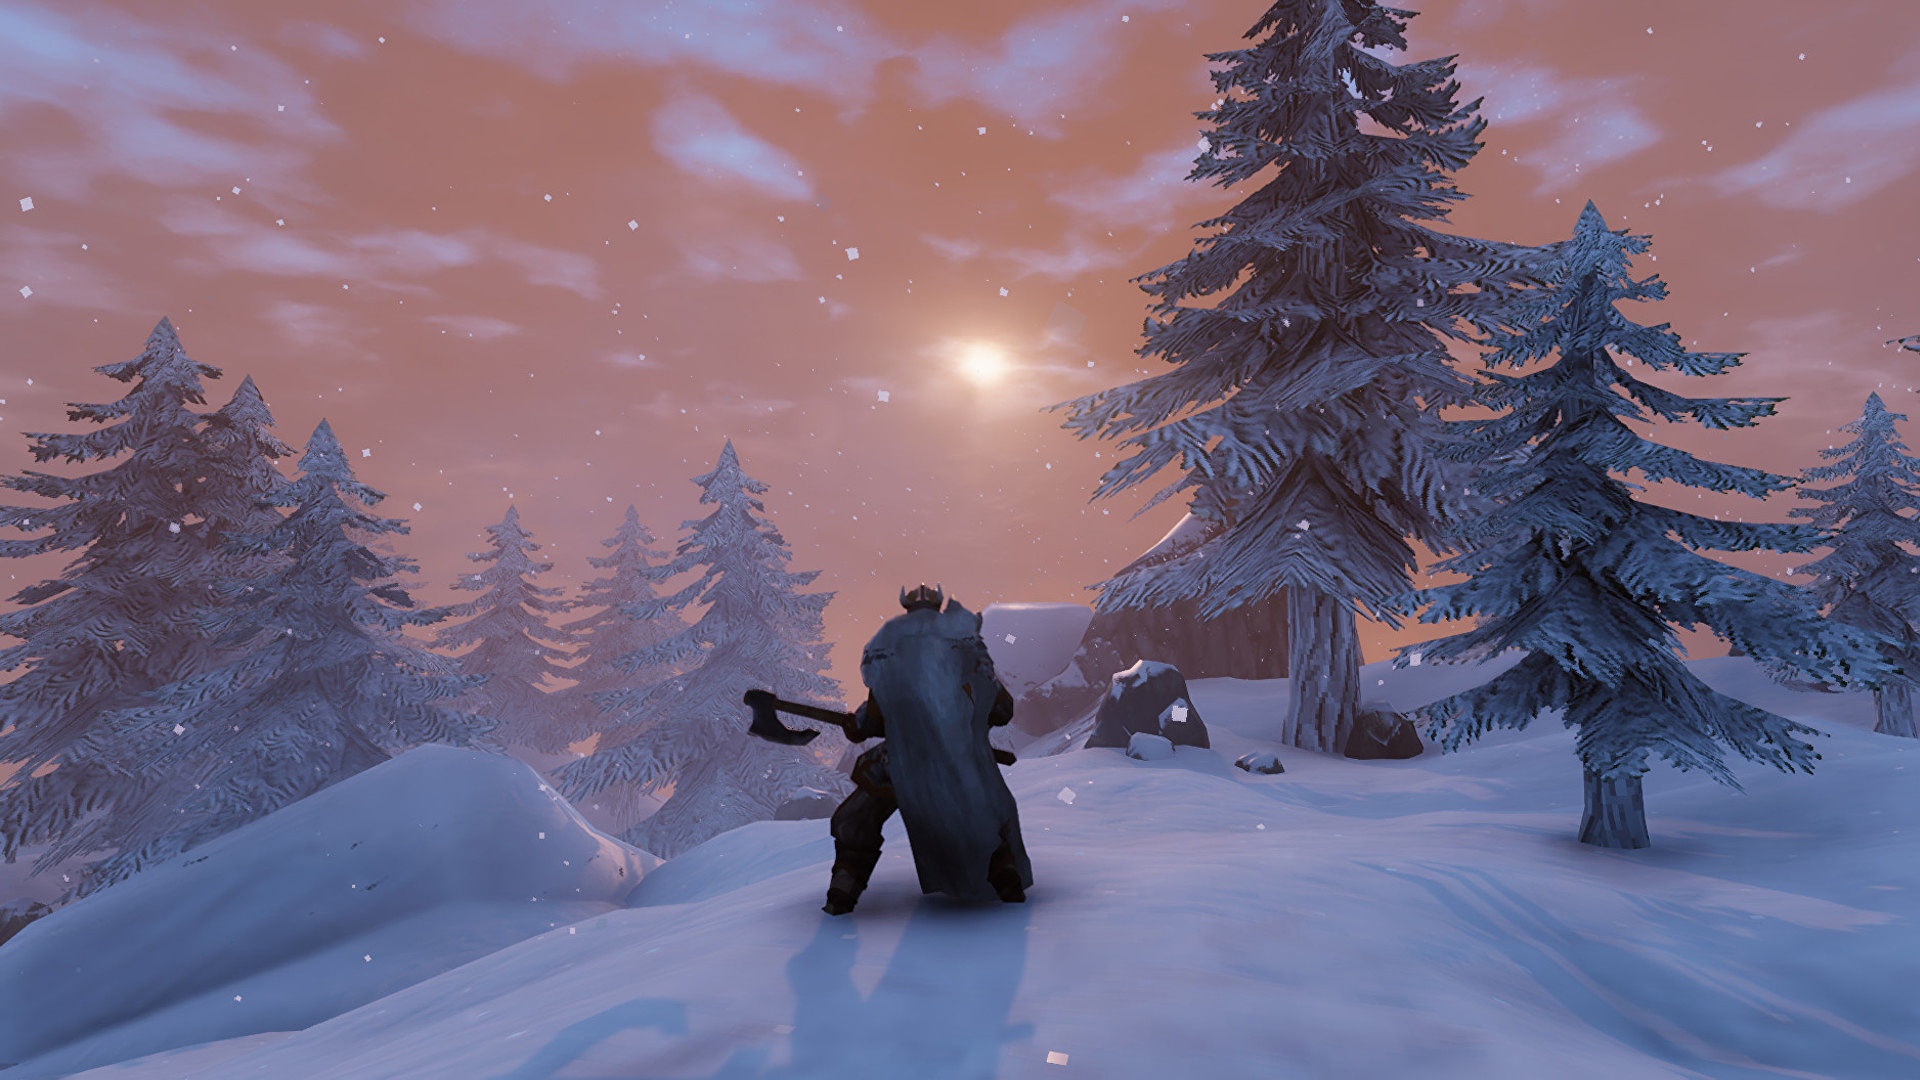 Valheim has now sold over 2 million copies in two weeks